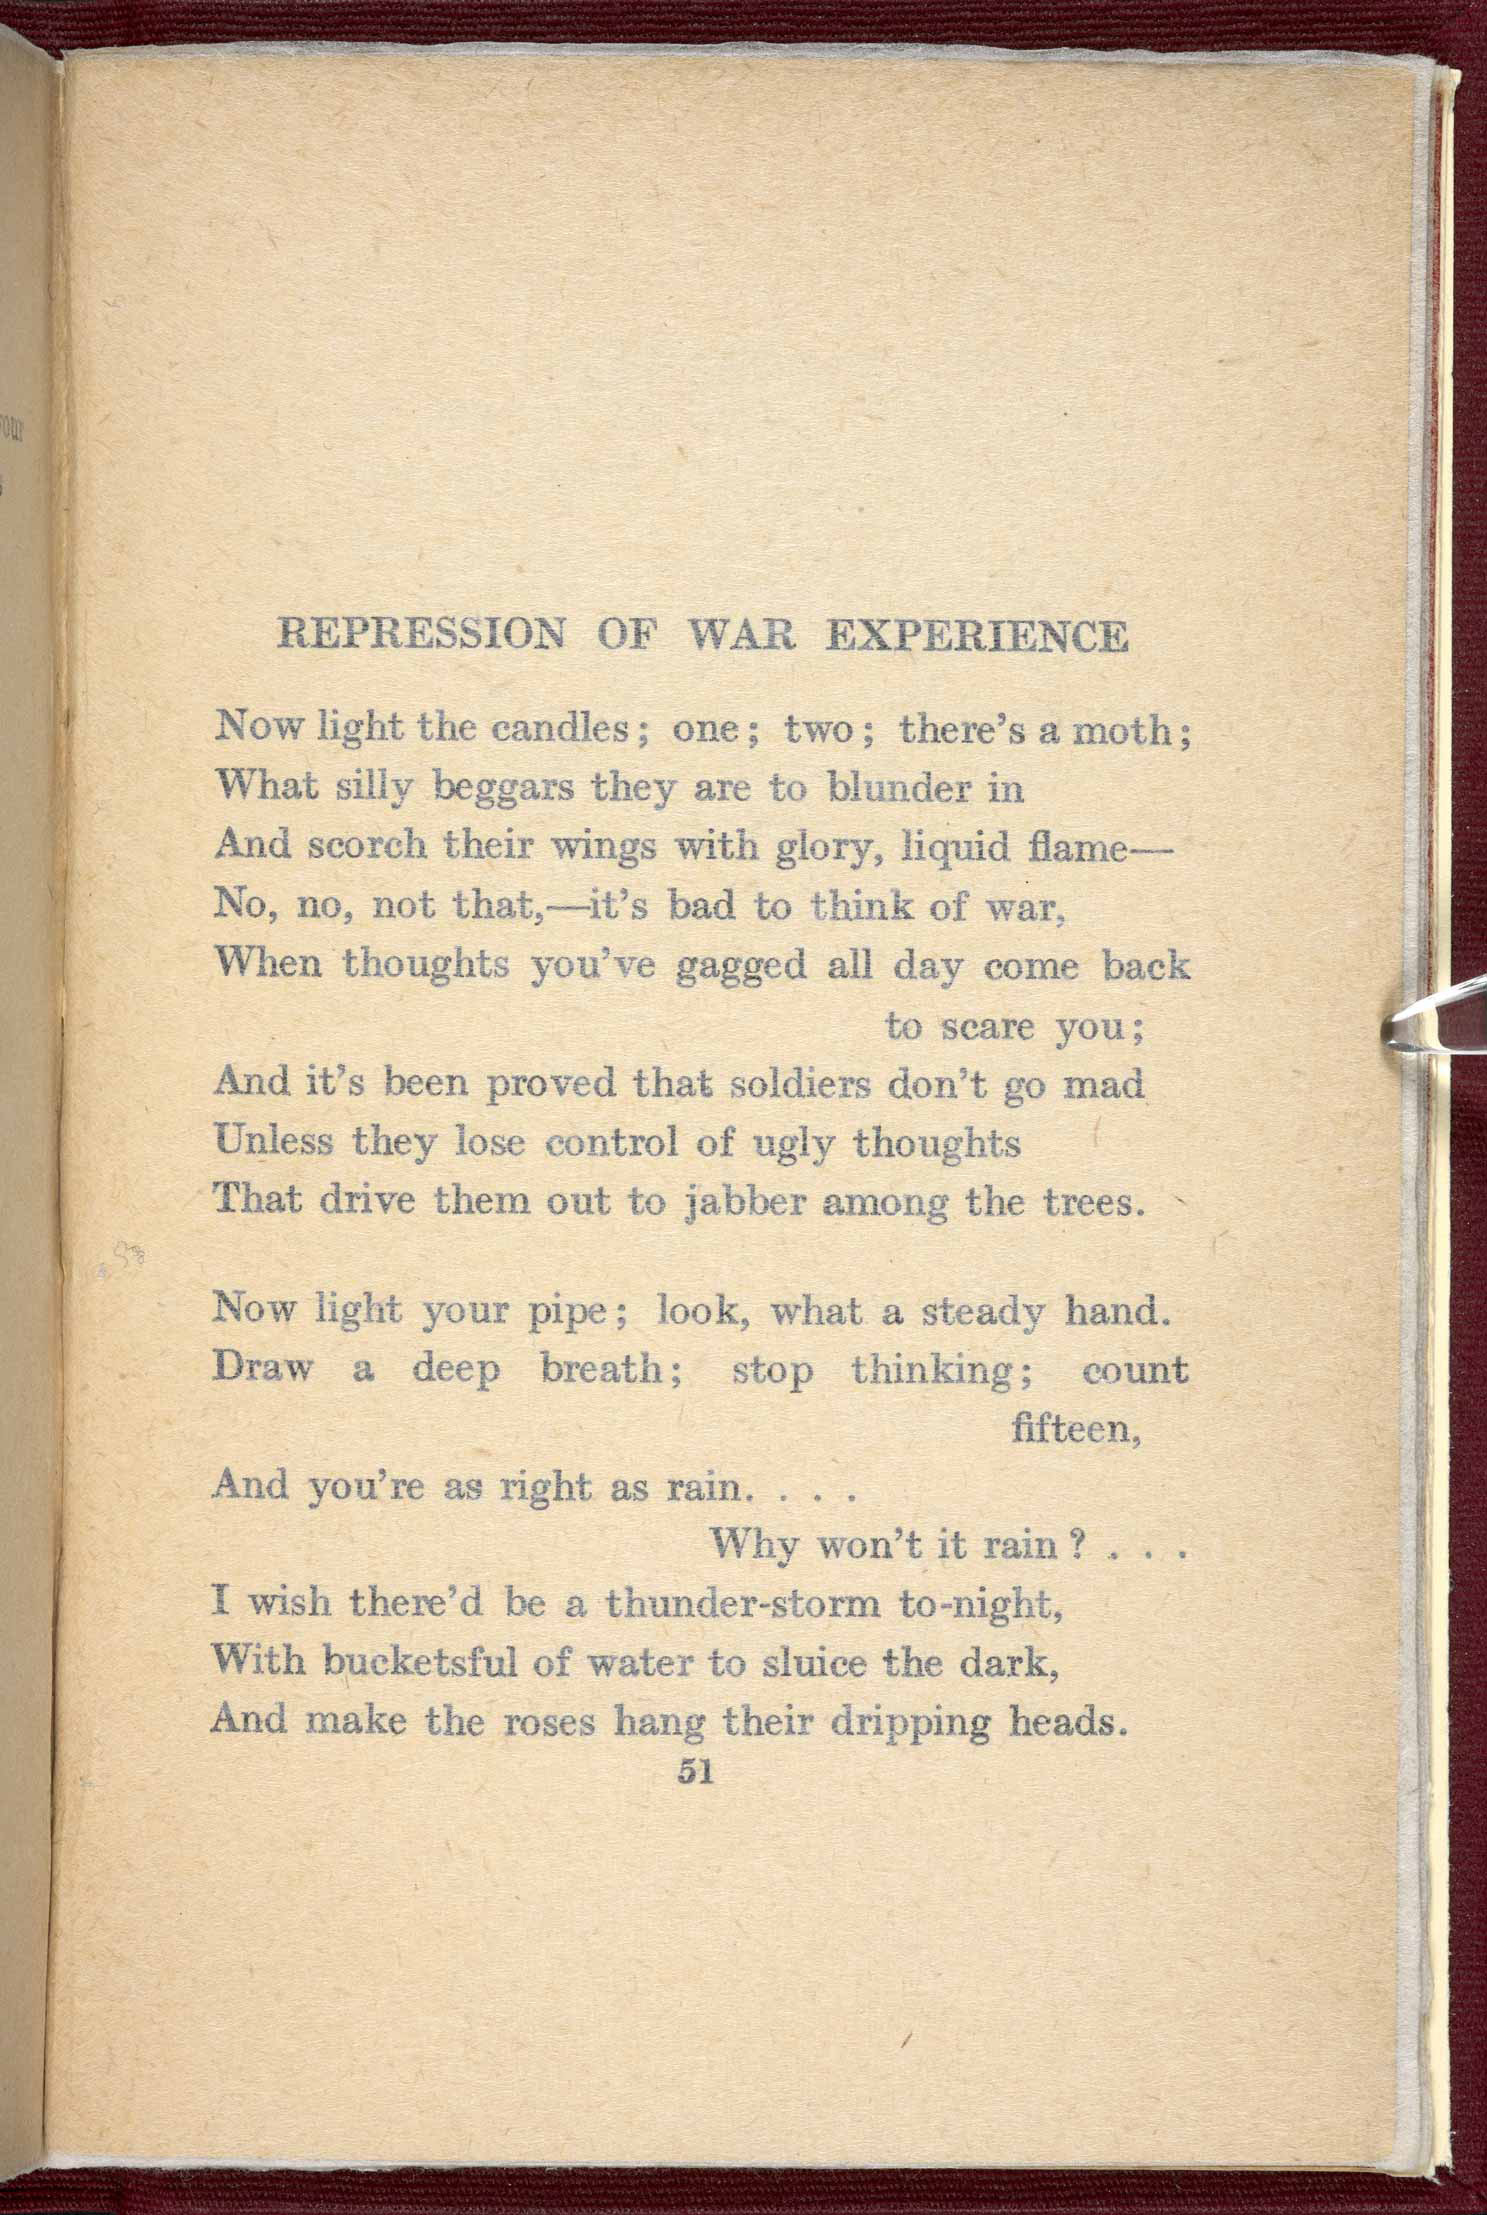 Counter-Attack, and other poems by Siegfried Sassoon